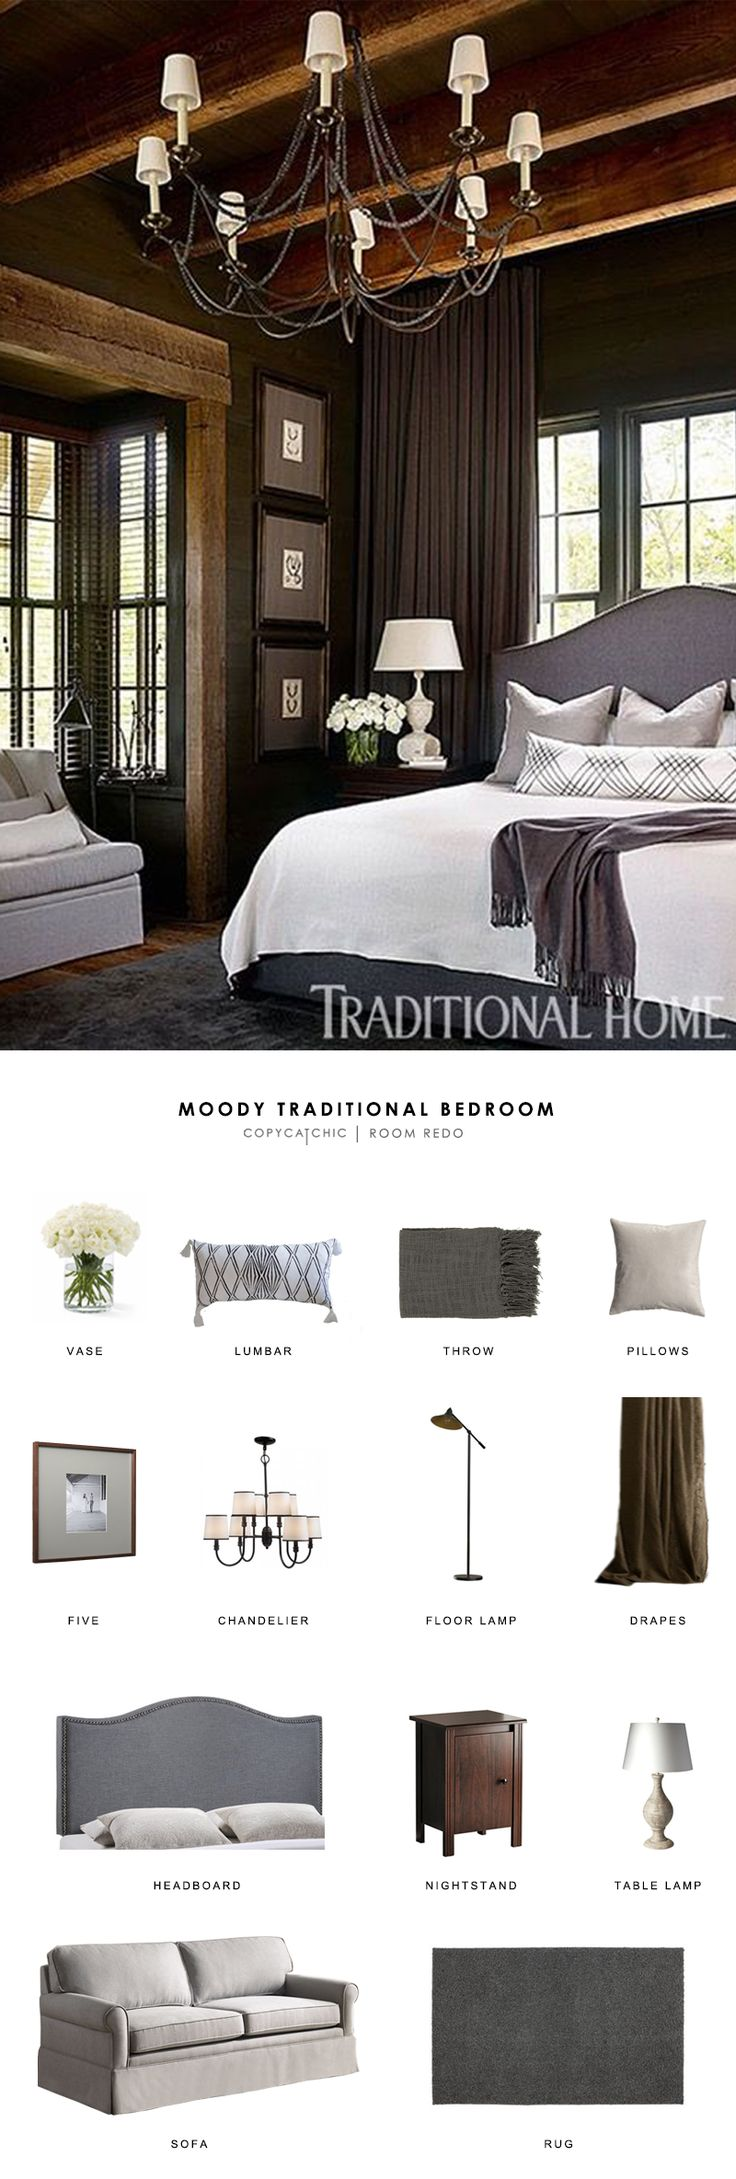 Tr traditional bedroom designs for couples - A Black Moody Master Bedroom Featuring In Traditional Home Magazine Gets Recreated For Less By Copycatchic